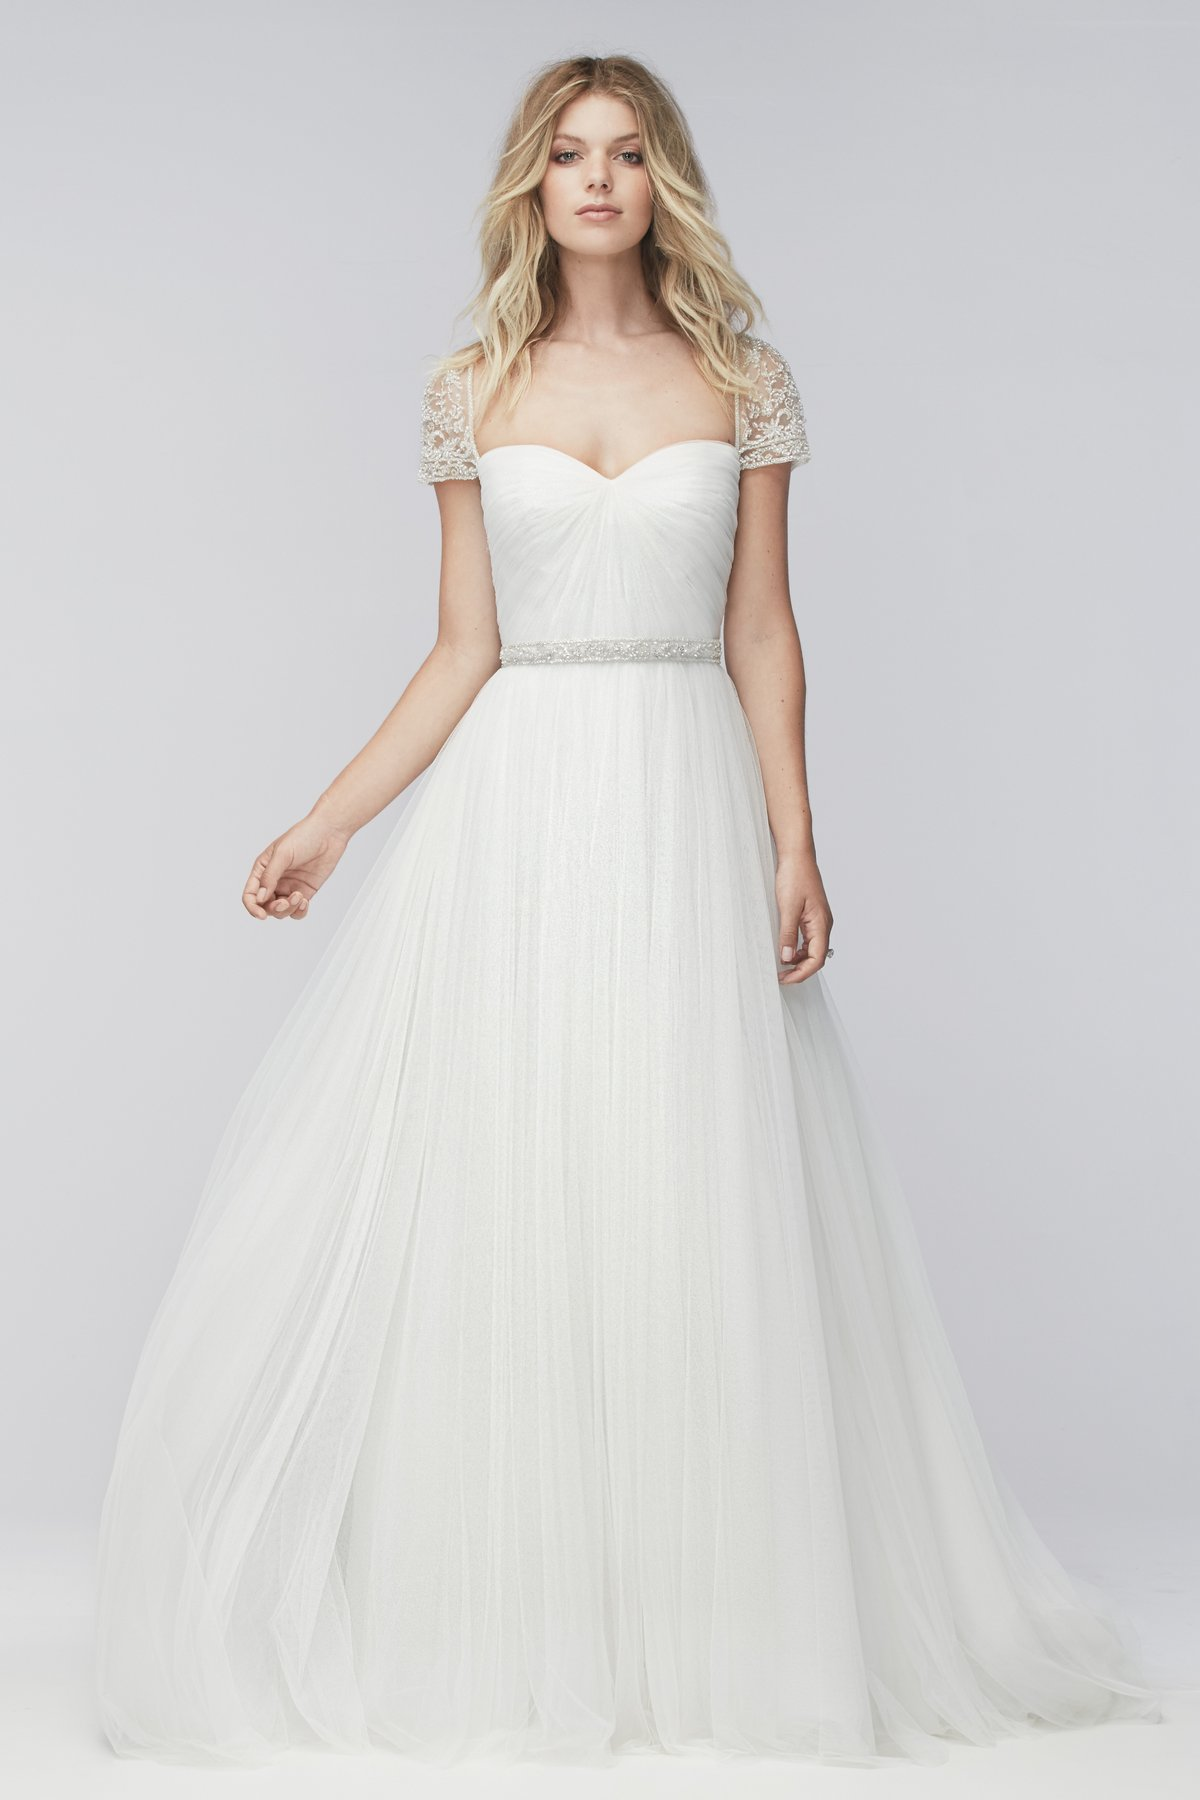 Lori G Wedding Dresses : Reed by wtoo wedding dress from lori g bridal derby